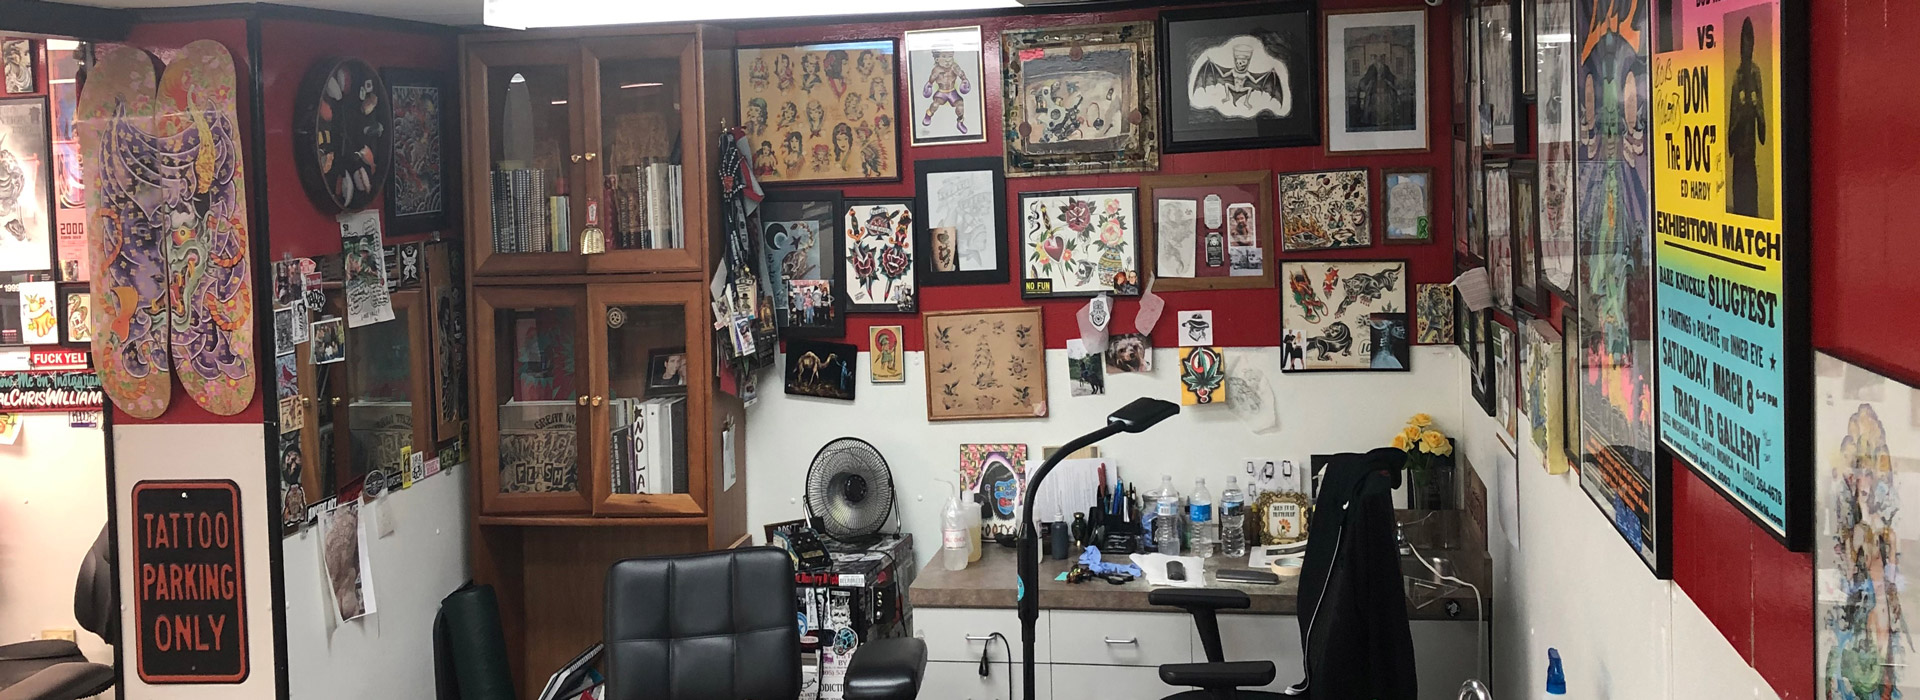 ElectroMagnetic Tattoo - inside the traditional tattoo shop